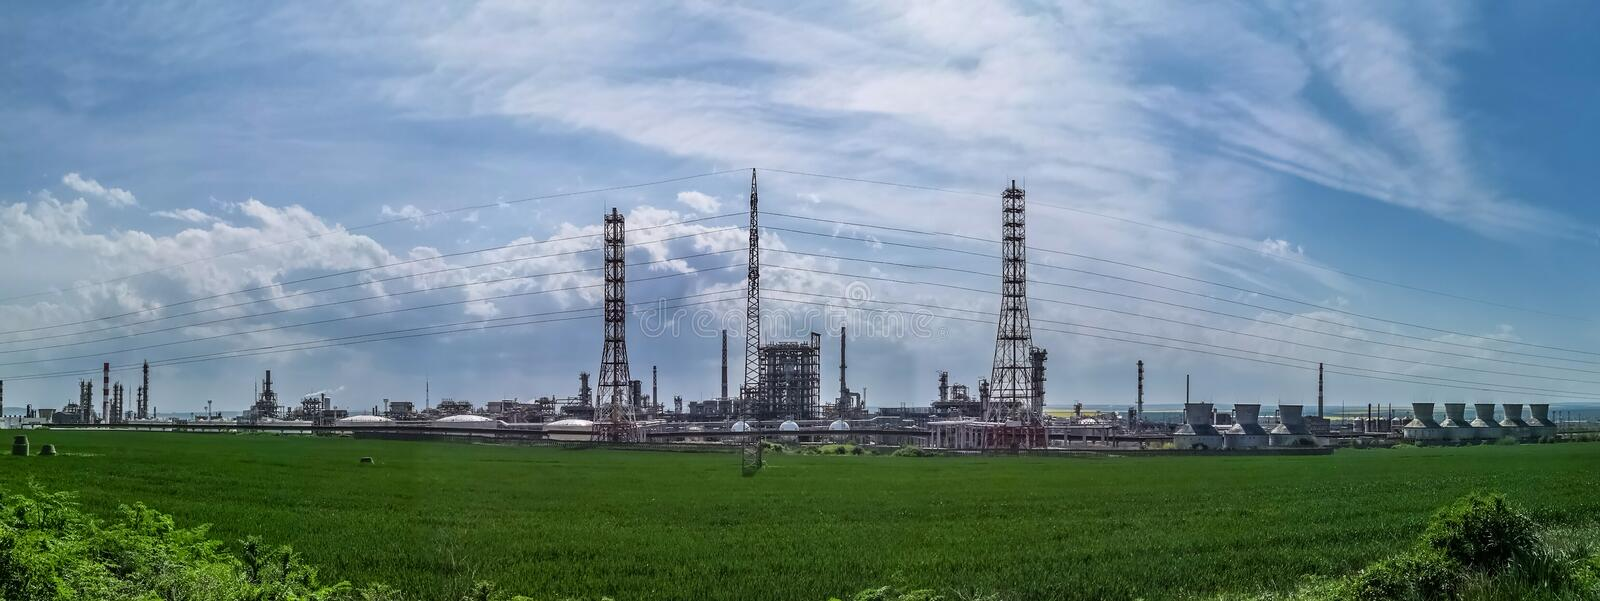 LUKOIL Neftochim Burgas. Based in Burgas, Bulgaria, is the largest oil refinery in the Balkans and the largest industrial enterprise in Bulgaria. Owned by royalty free stock photo